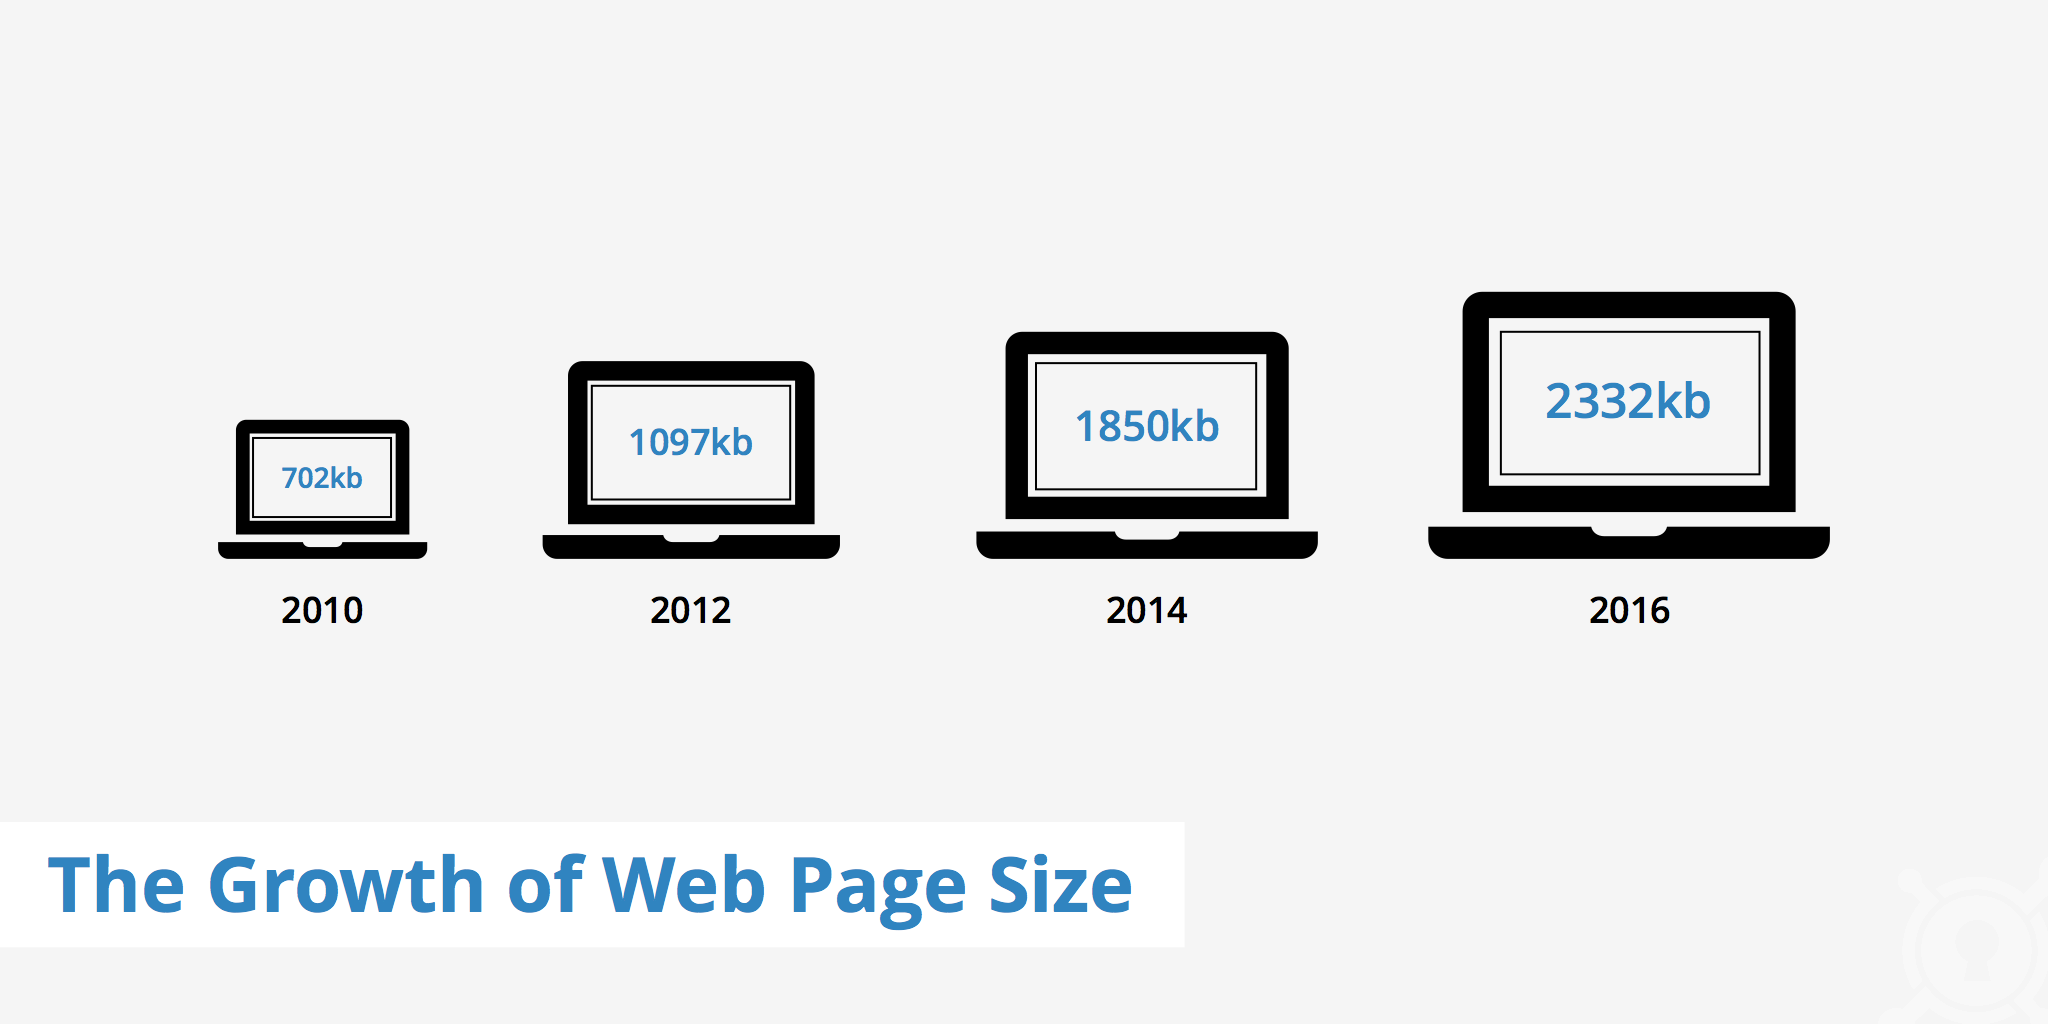 The Growth of Web Page Size